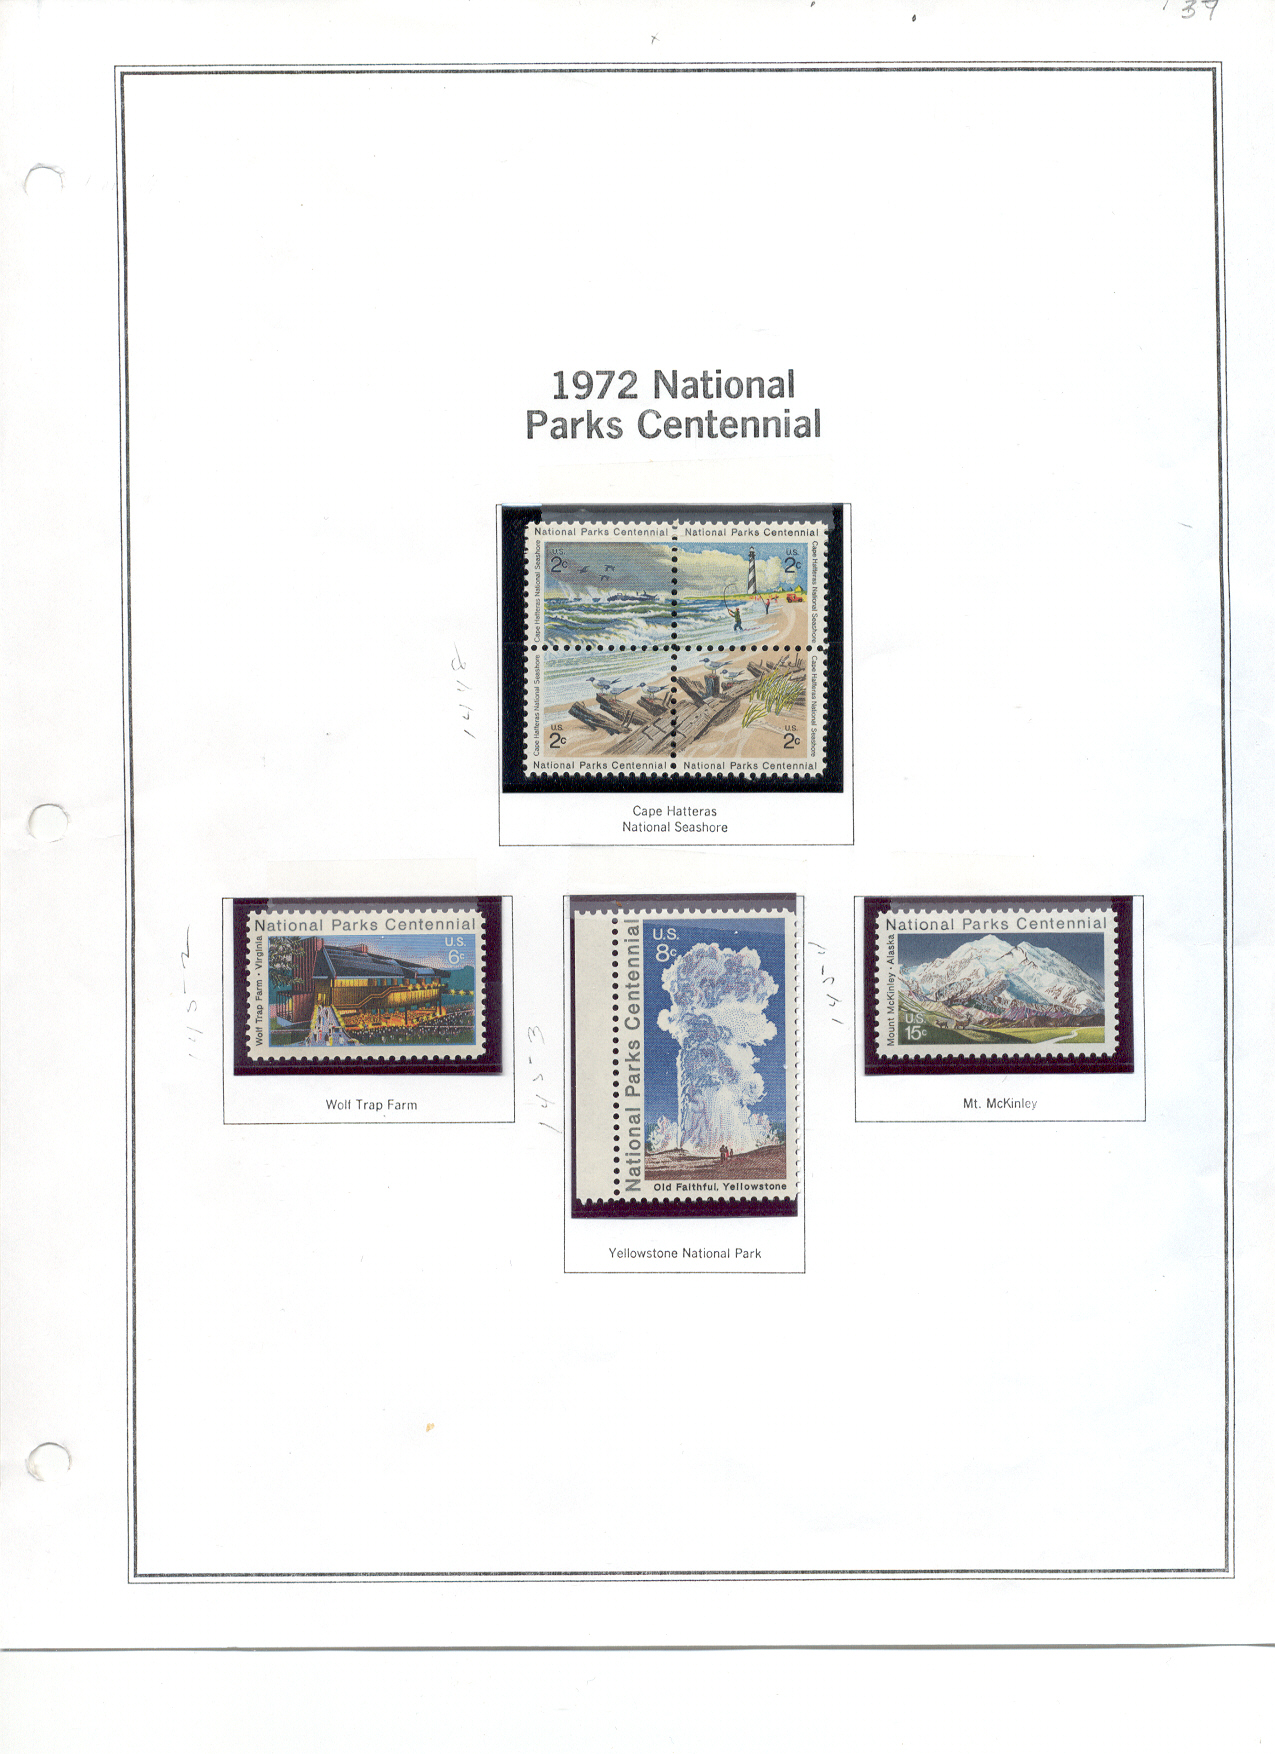 US Stamp Collection MNH – Minkus Pages 1951-1972